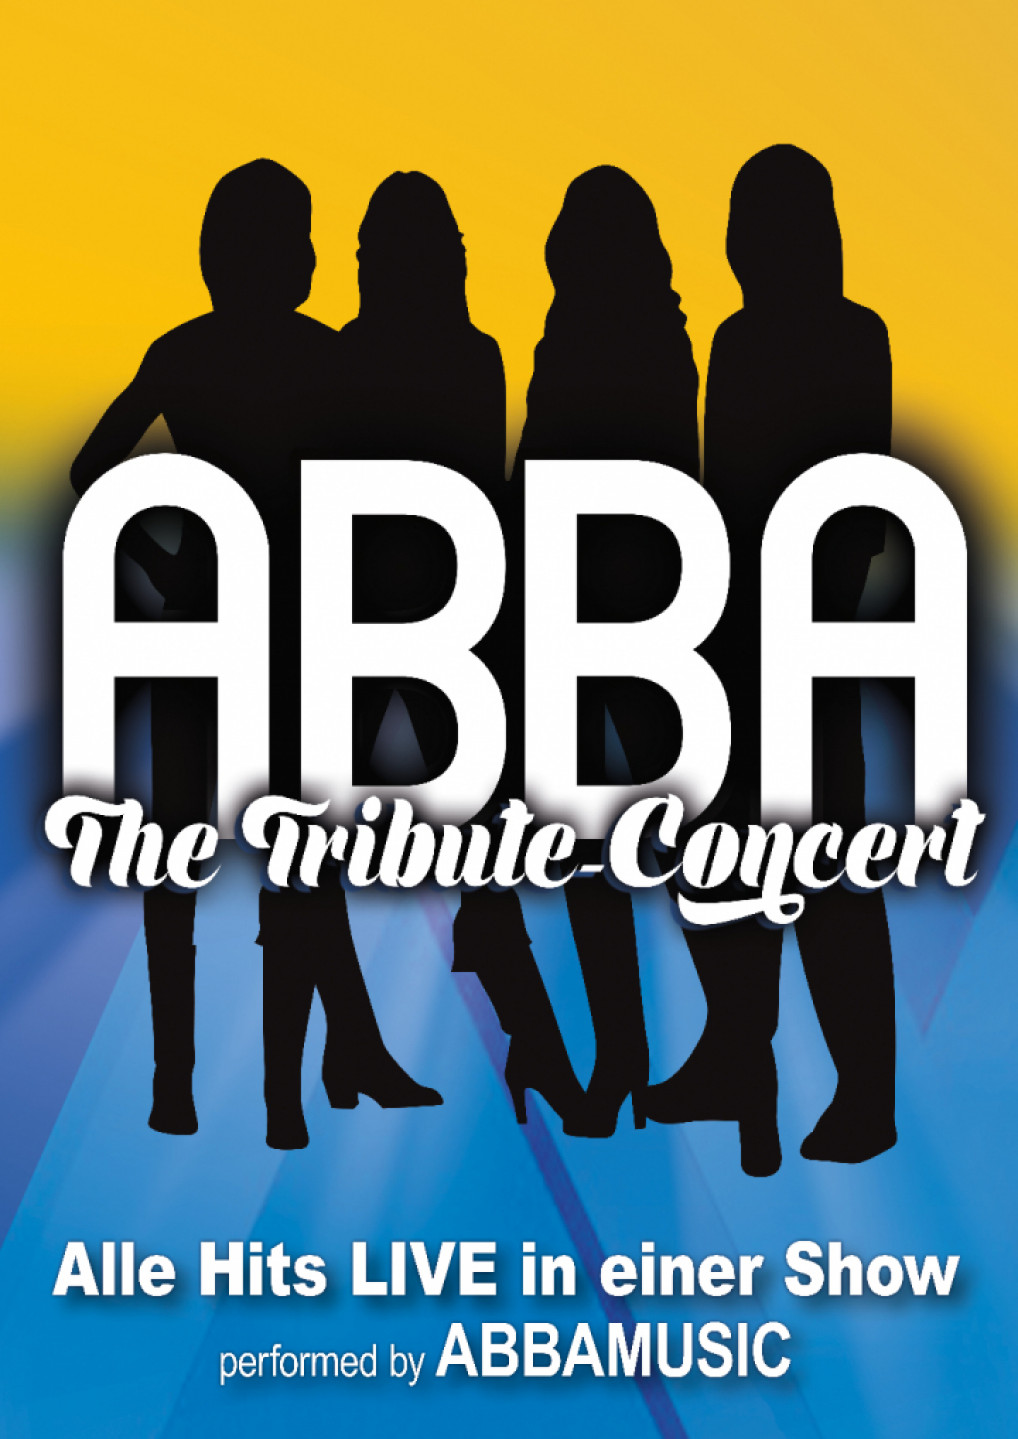 ABBA – The Tribute Concert performed by ABBAMUSIC